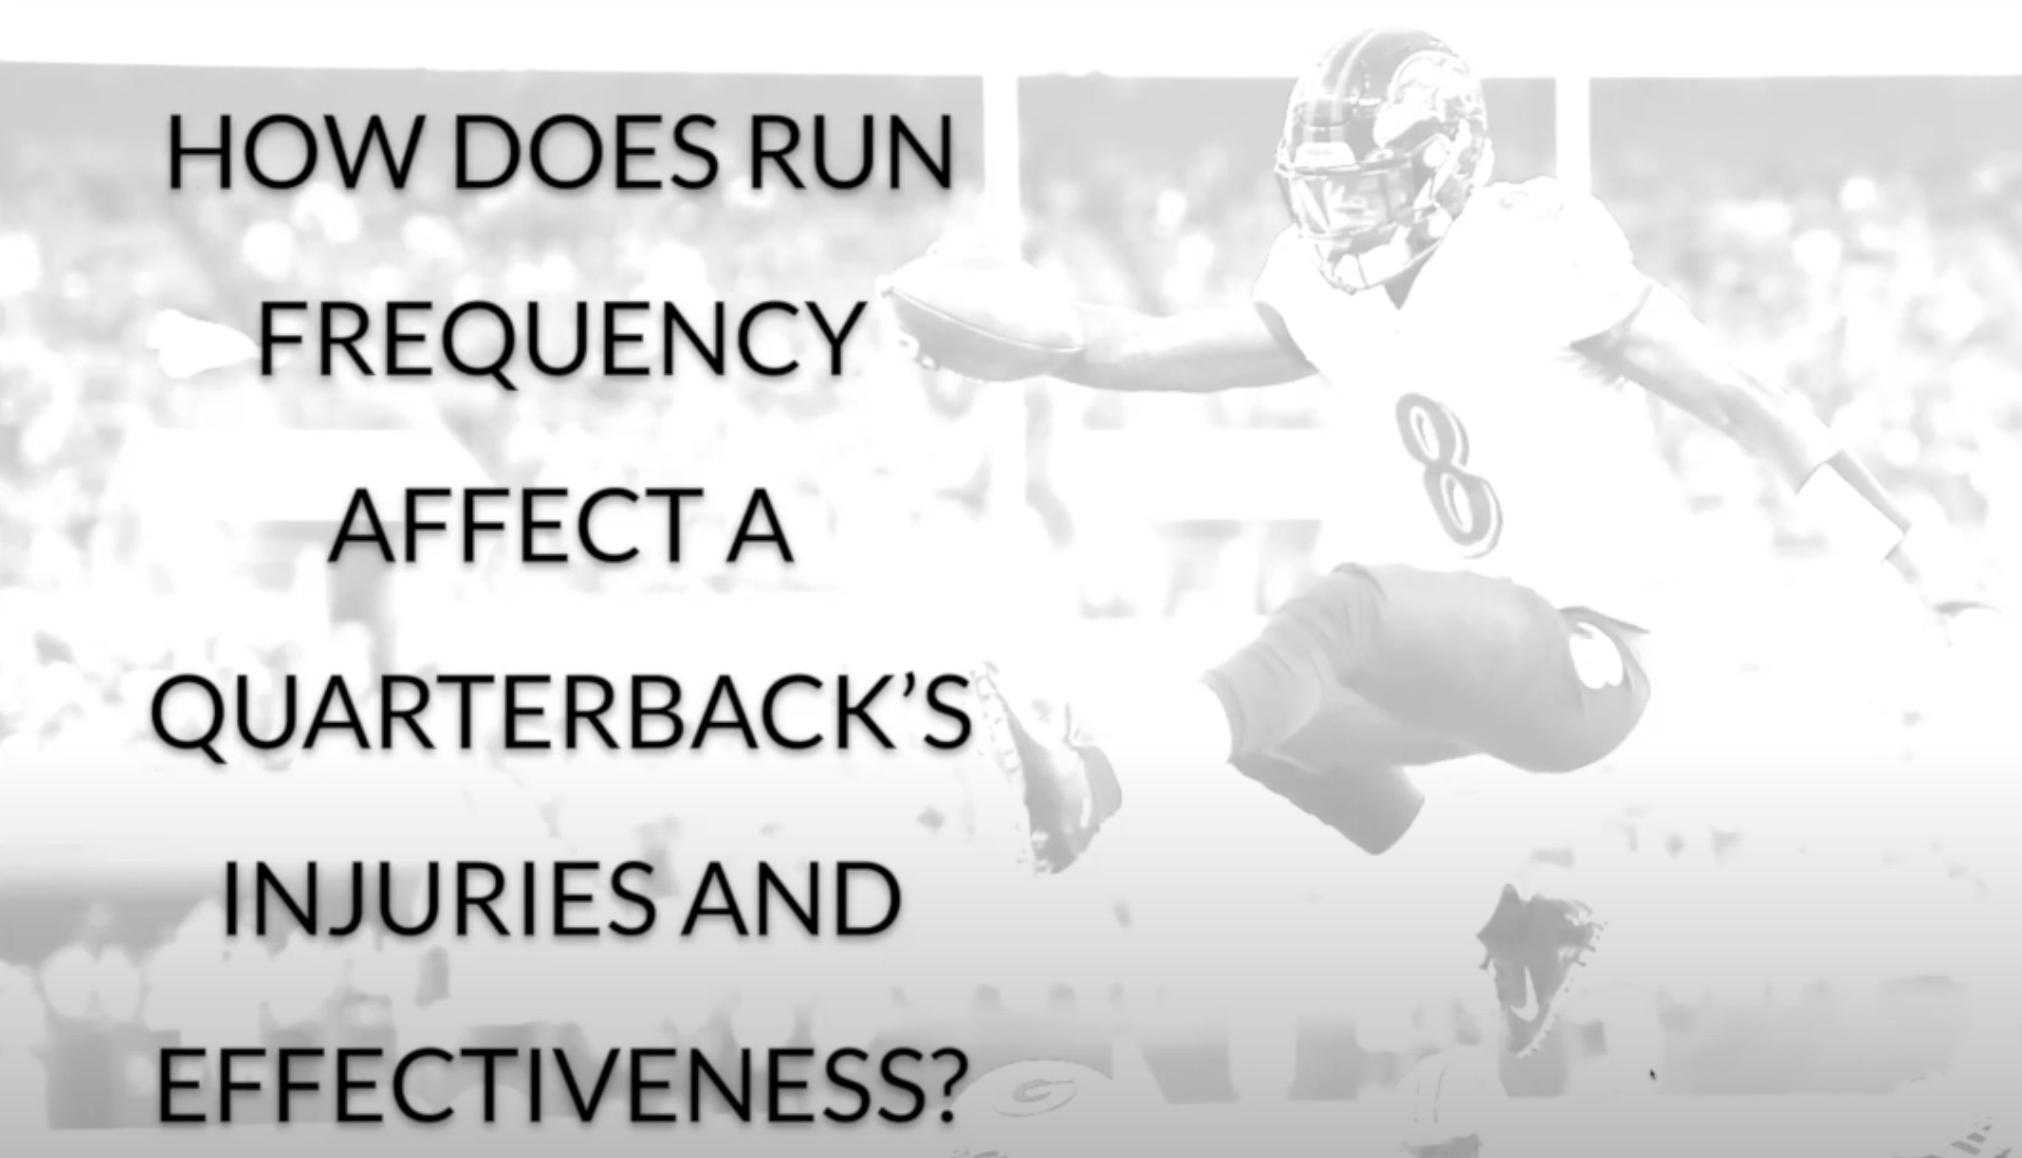 How Does Run Frequency Affect A Quarterback's Injuries and Effectiveness?